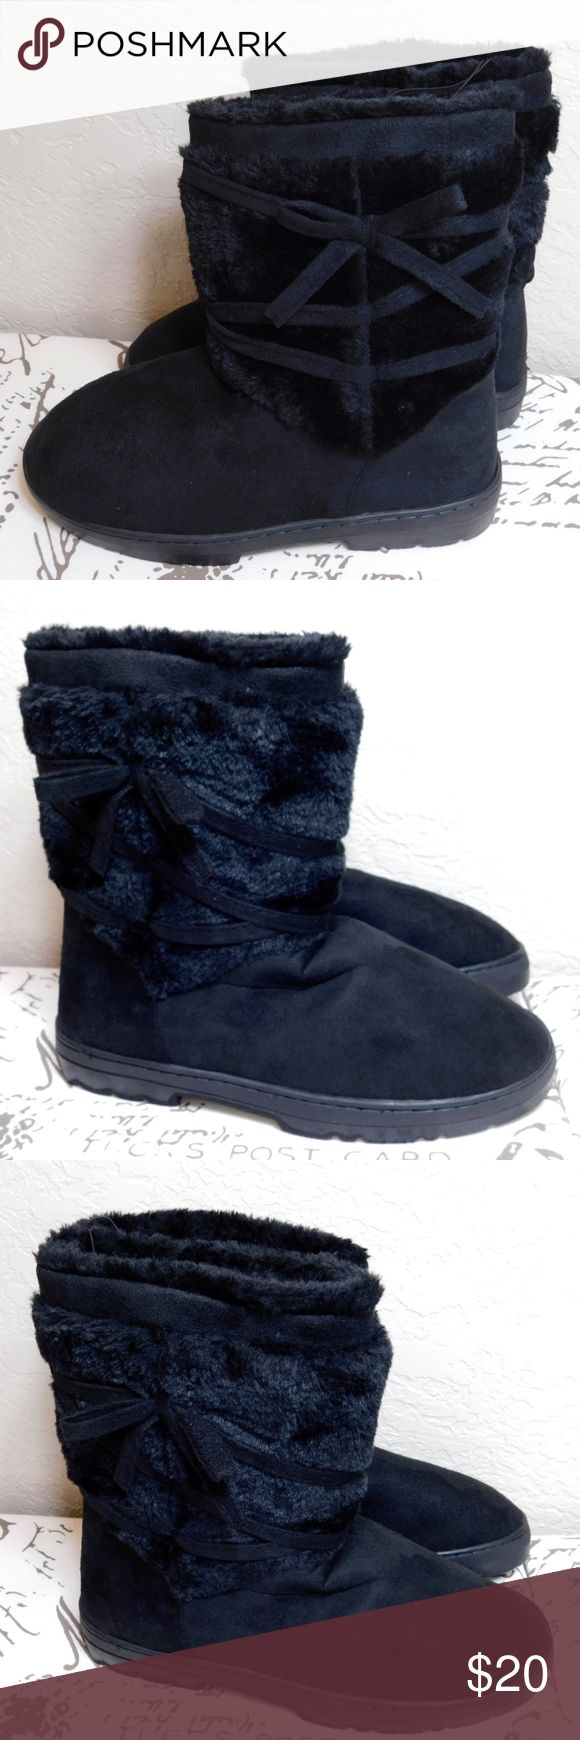 Gina Women's Microsuede Boots Size: 9-10 M Gina Women's Microsuede Boots are super-soft and have a faux-fur material that runs up the leg and into the boot, embellished  with a microsuede trim that wraps around the ankle and is sewn in place, and have durable outsoles These boots will keep your feet warm and toasty Material:  Upper - 60% Polyester, 40% Shearling Bottom - TPR + Fabric Condition: NEW- The item is brand new - unused Gina Shoes Ankle Boots & Booties